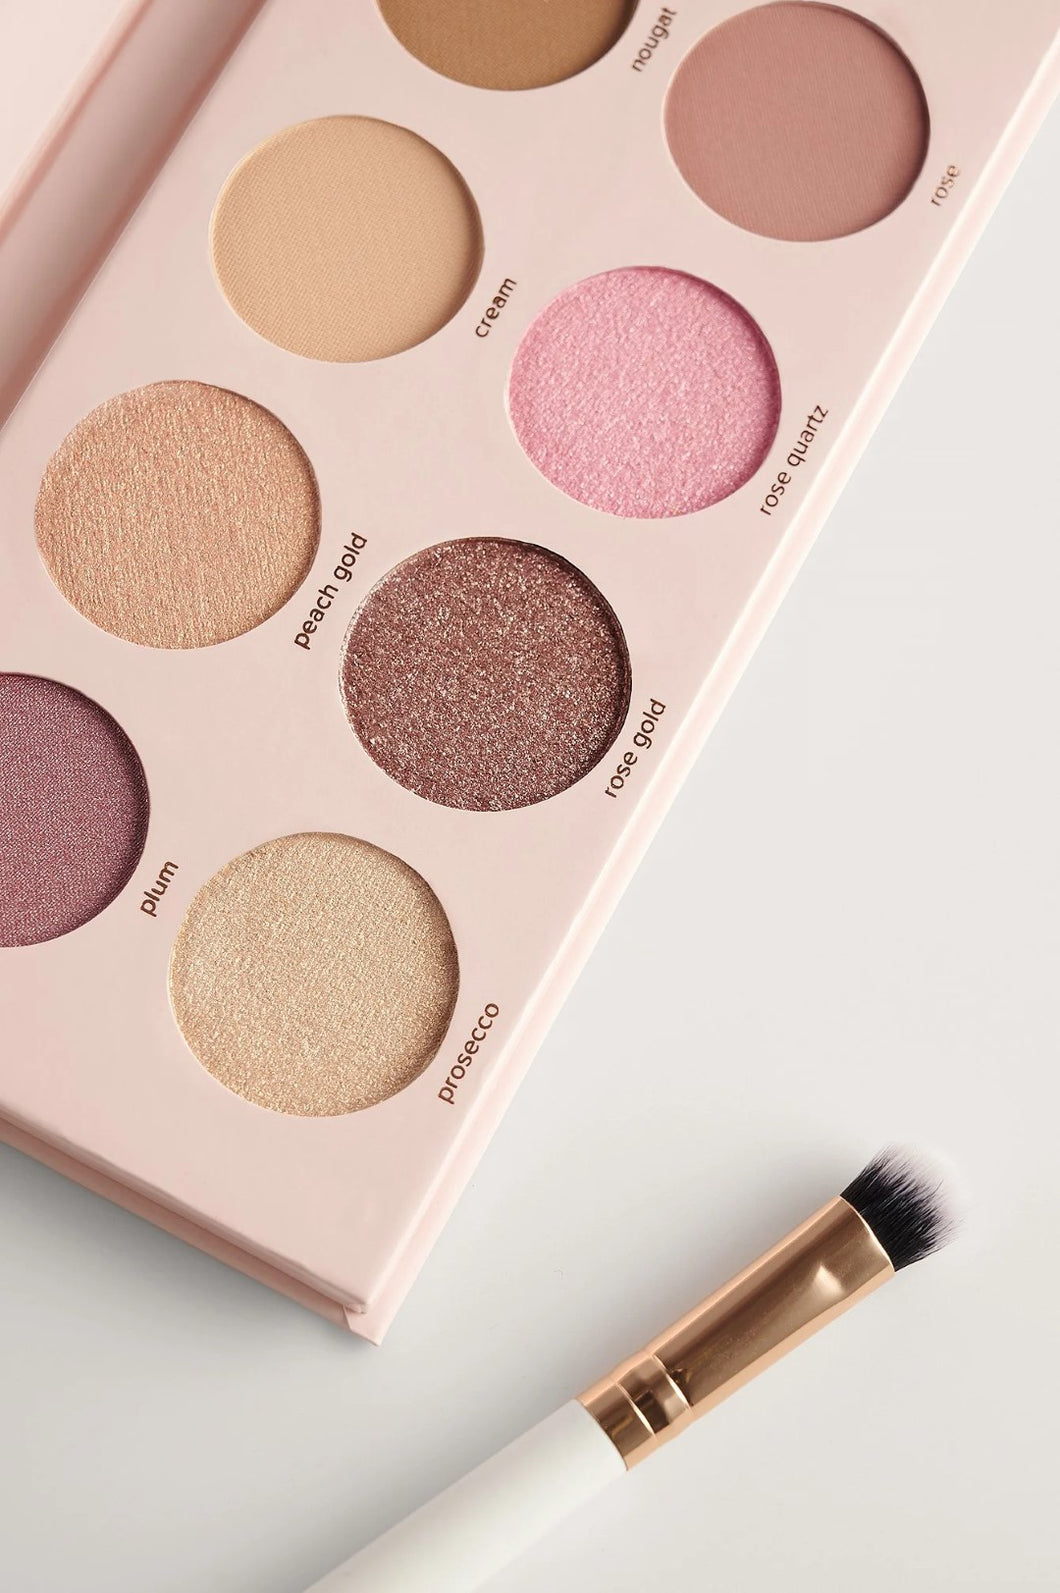 Rose Eyeshadow Palette BTY by NA-KD 7009-1704-00000